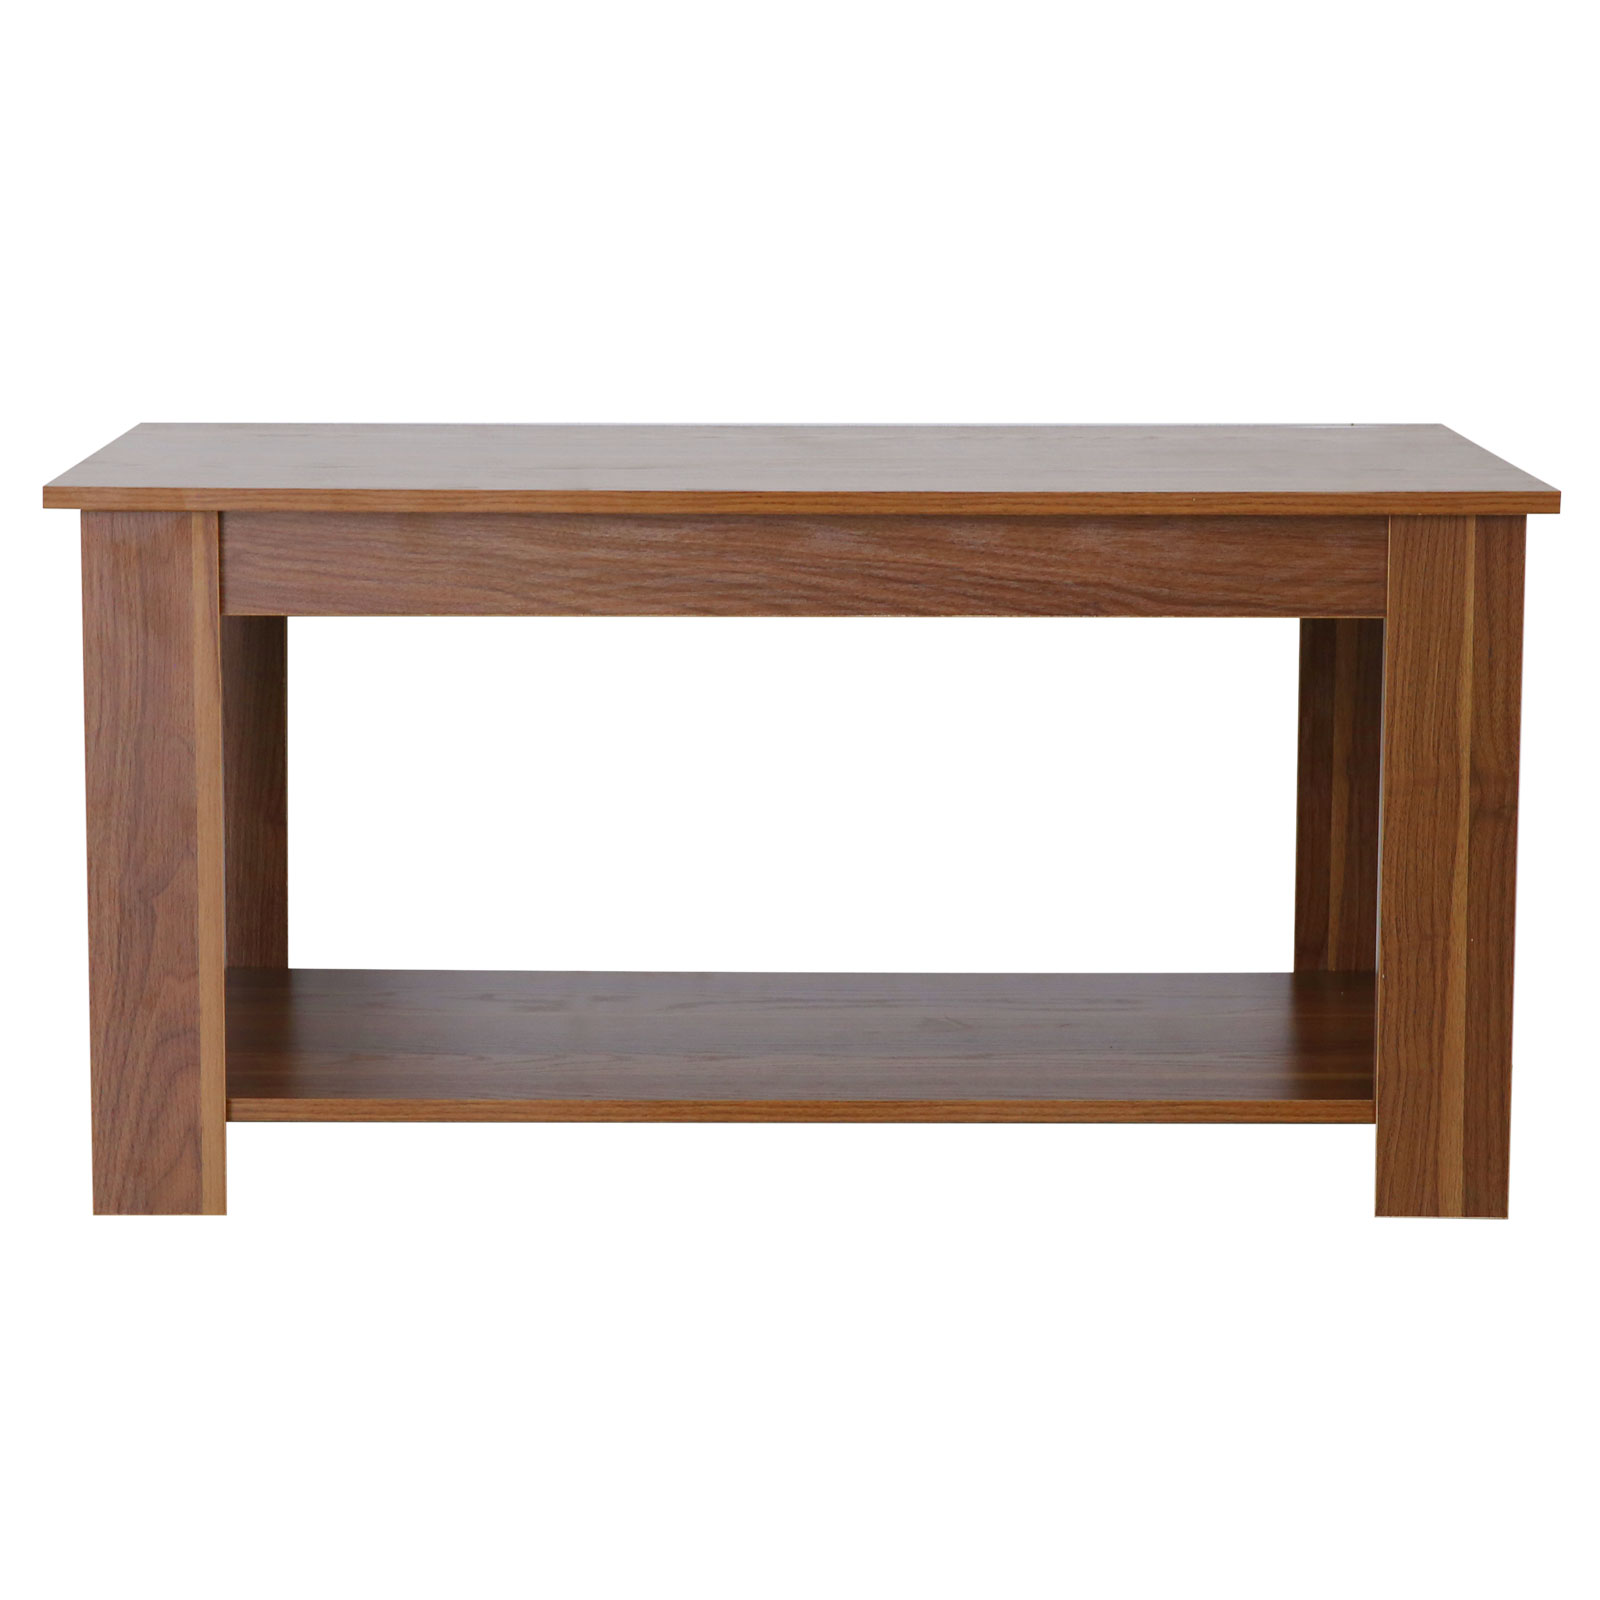 Exciting Oak Lift Top Coffee Table Images Designs Dievoon